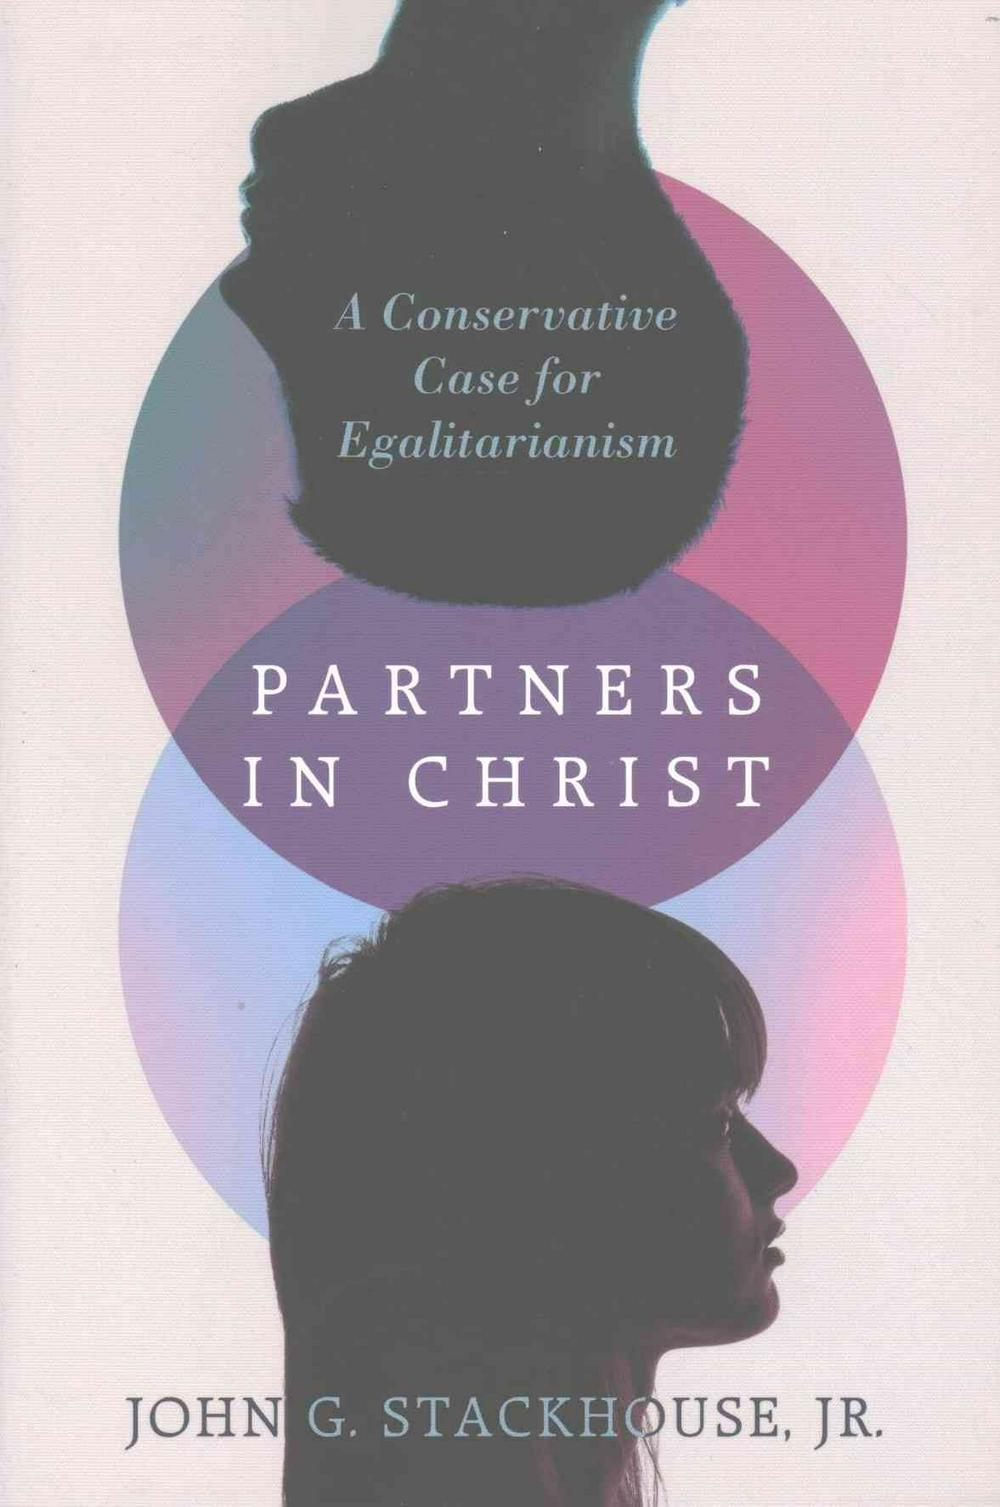 Partners in ChristA Conservative Case for Egalitarianism